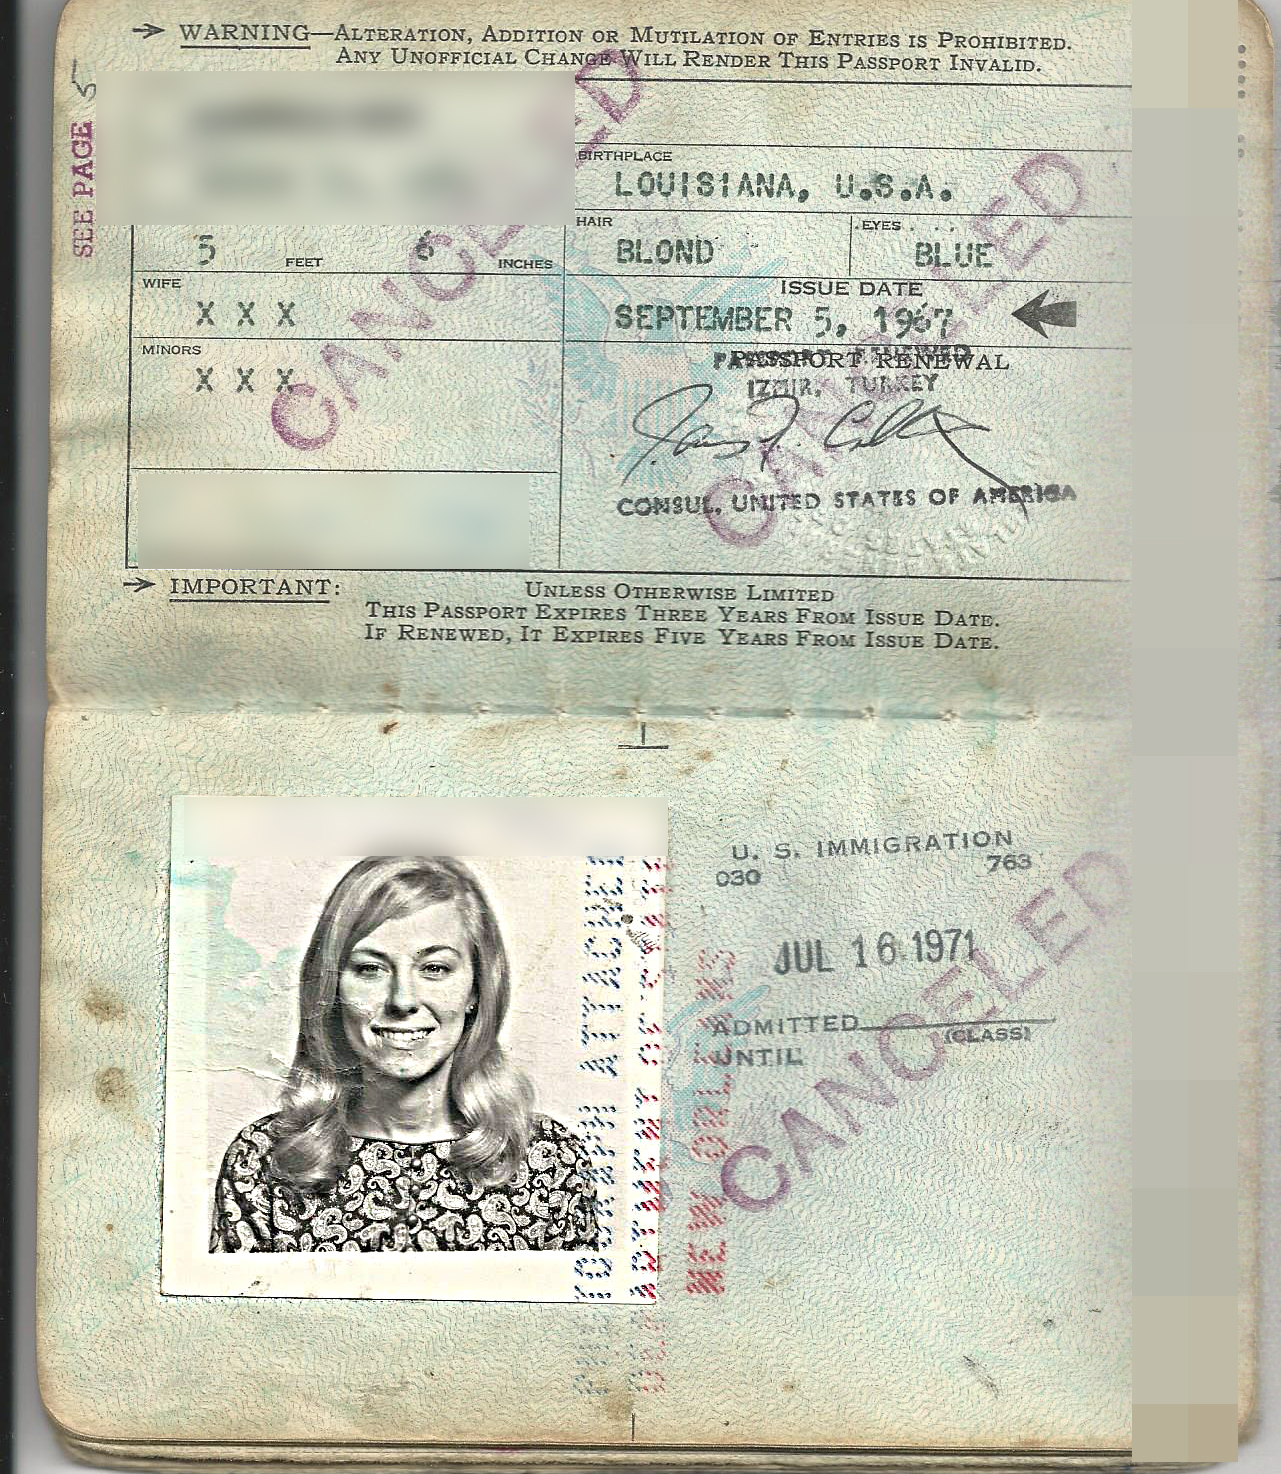 Carroll Devine 1967 passport